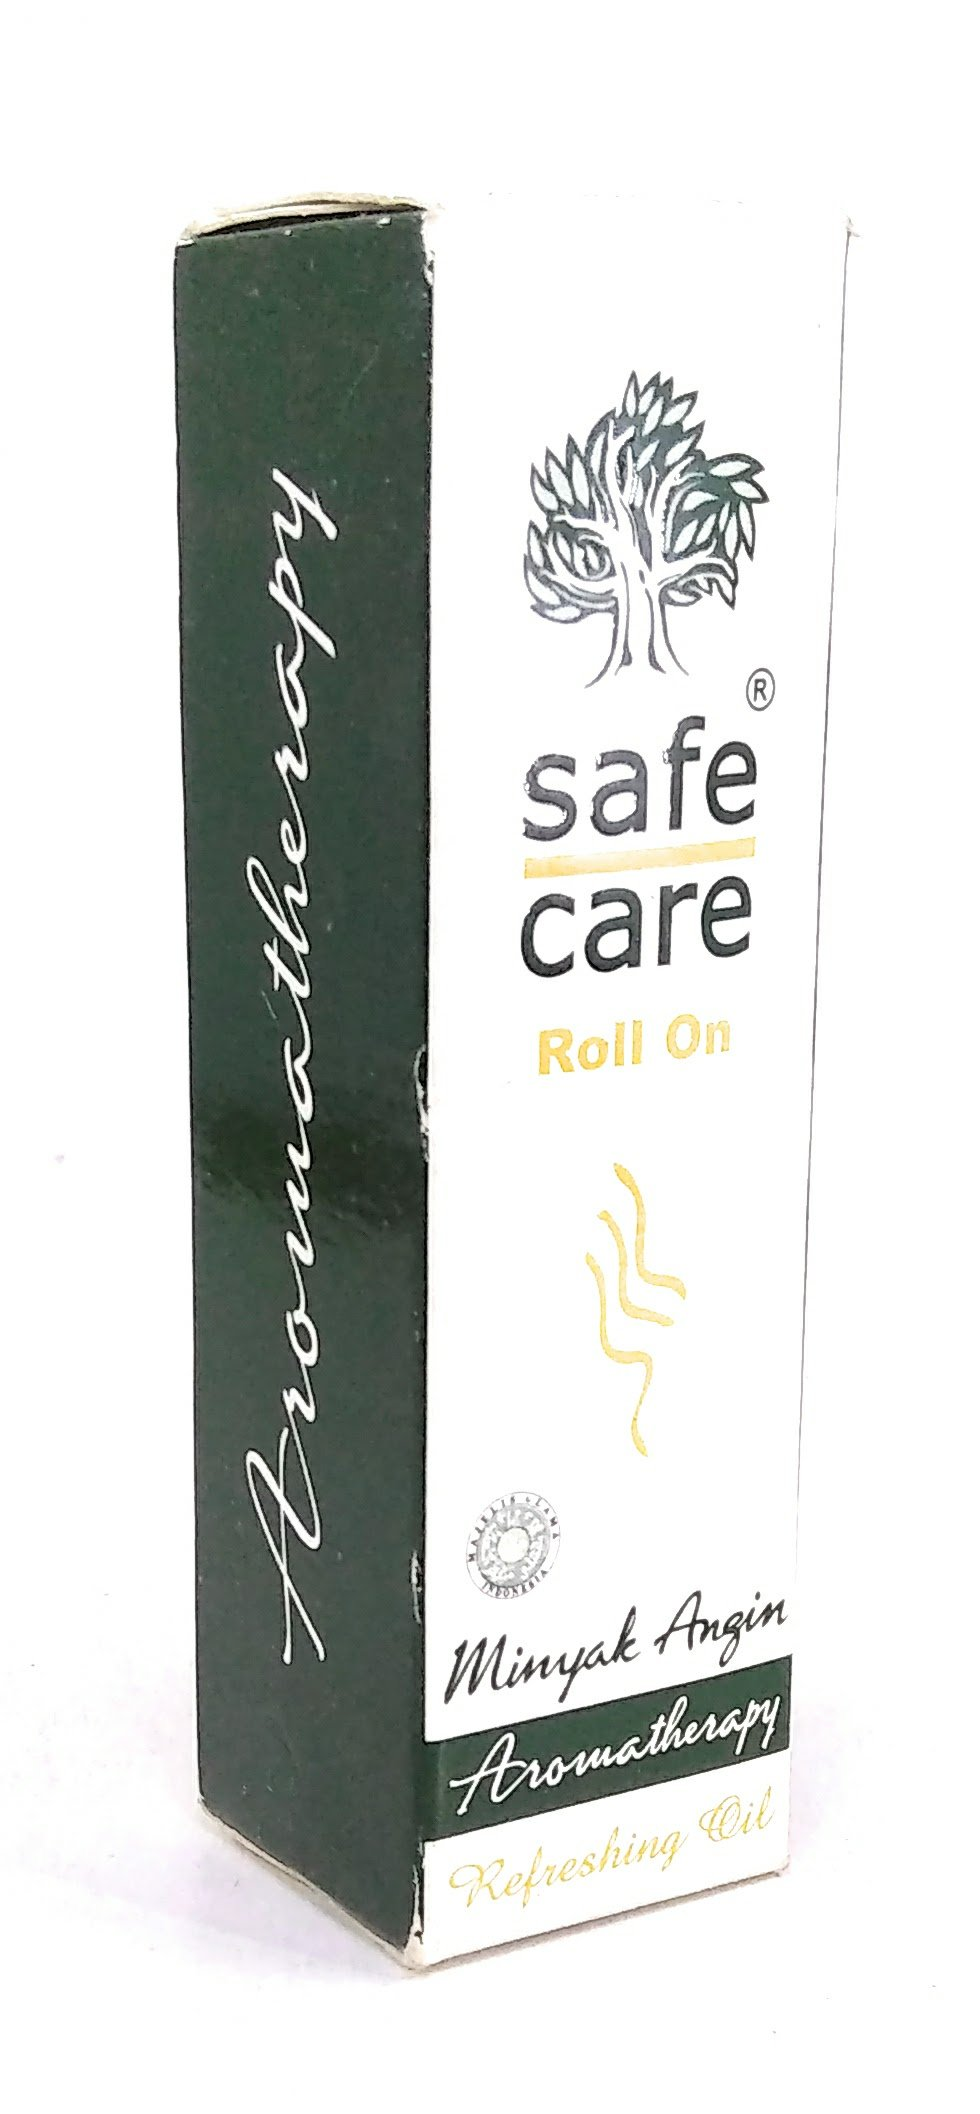 Safe Care Roll on Refreshing Oil Aromatherapy, 10 Ml (Pack of 6)